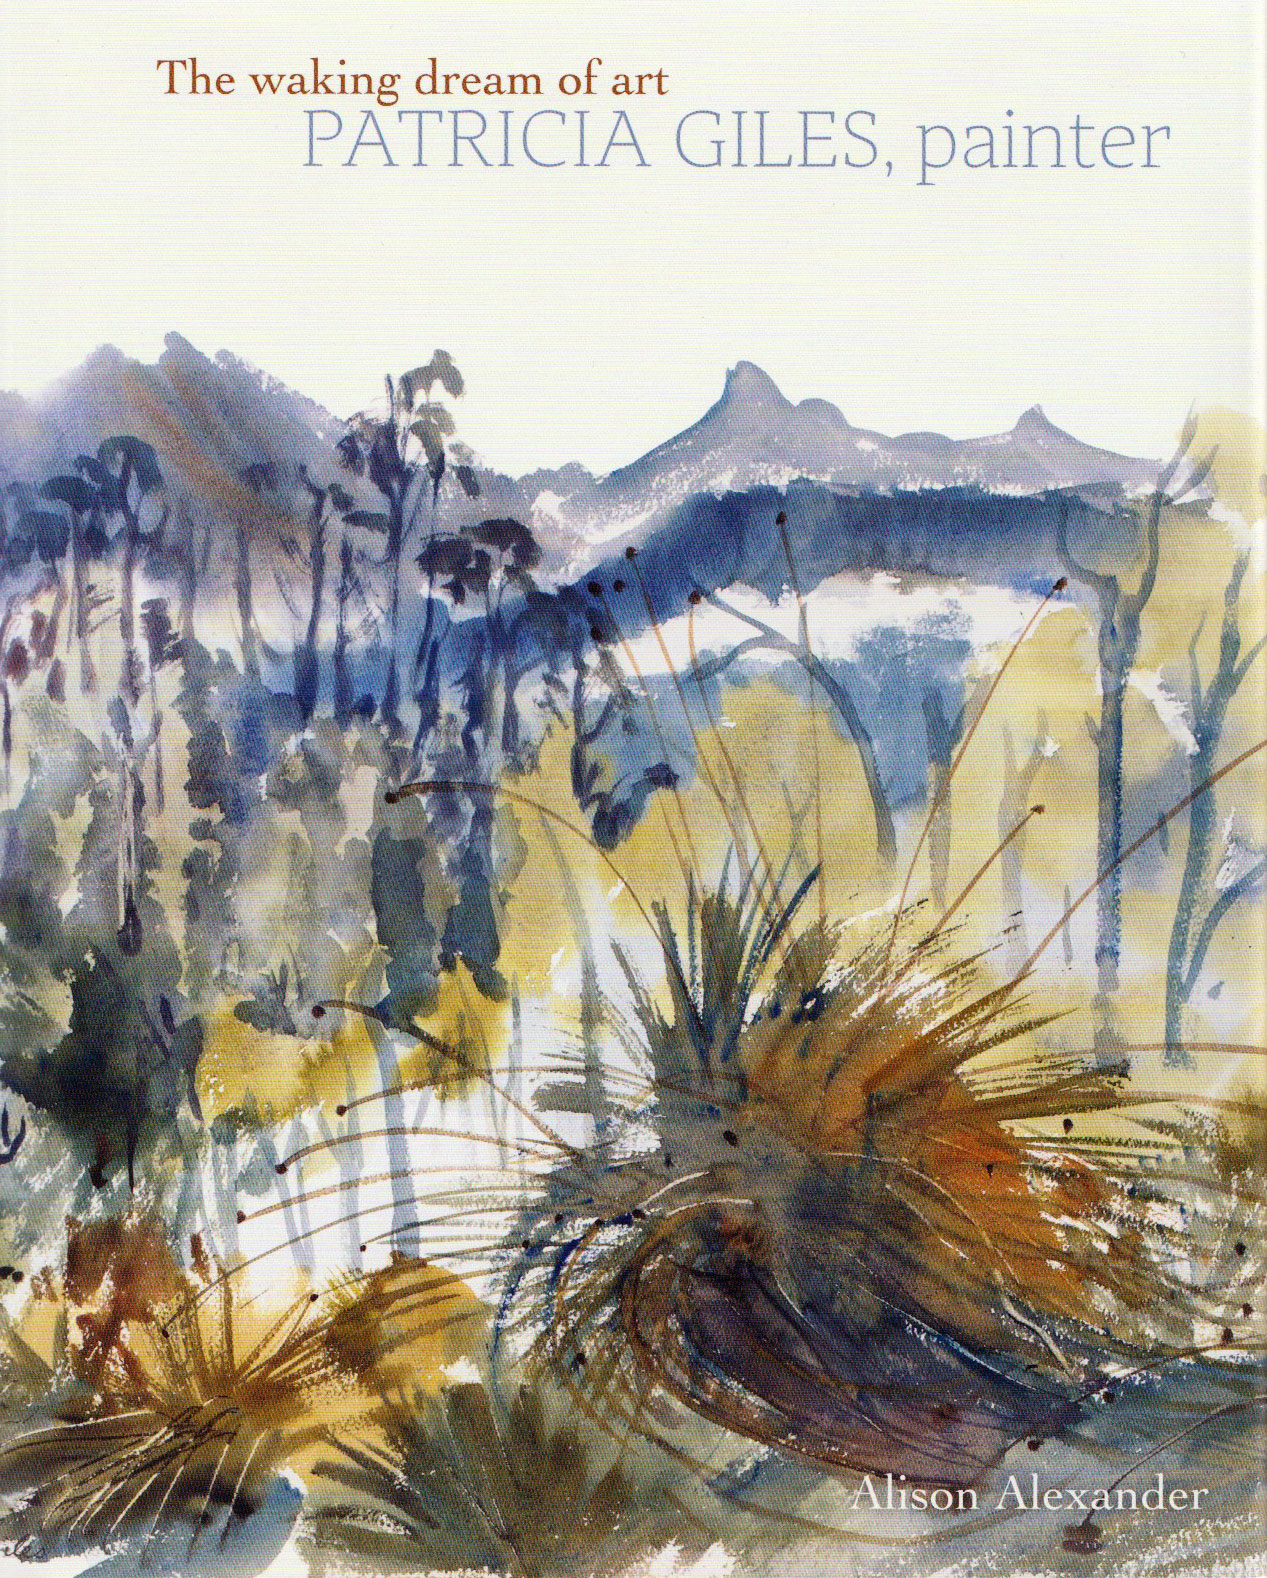 The Waking Dream of Art - Patricia Giles, painter